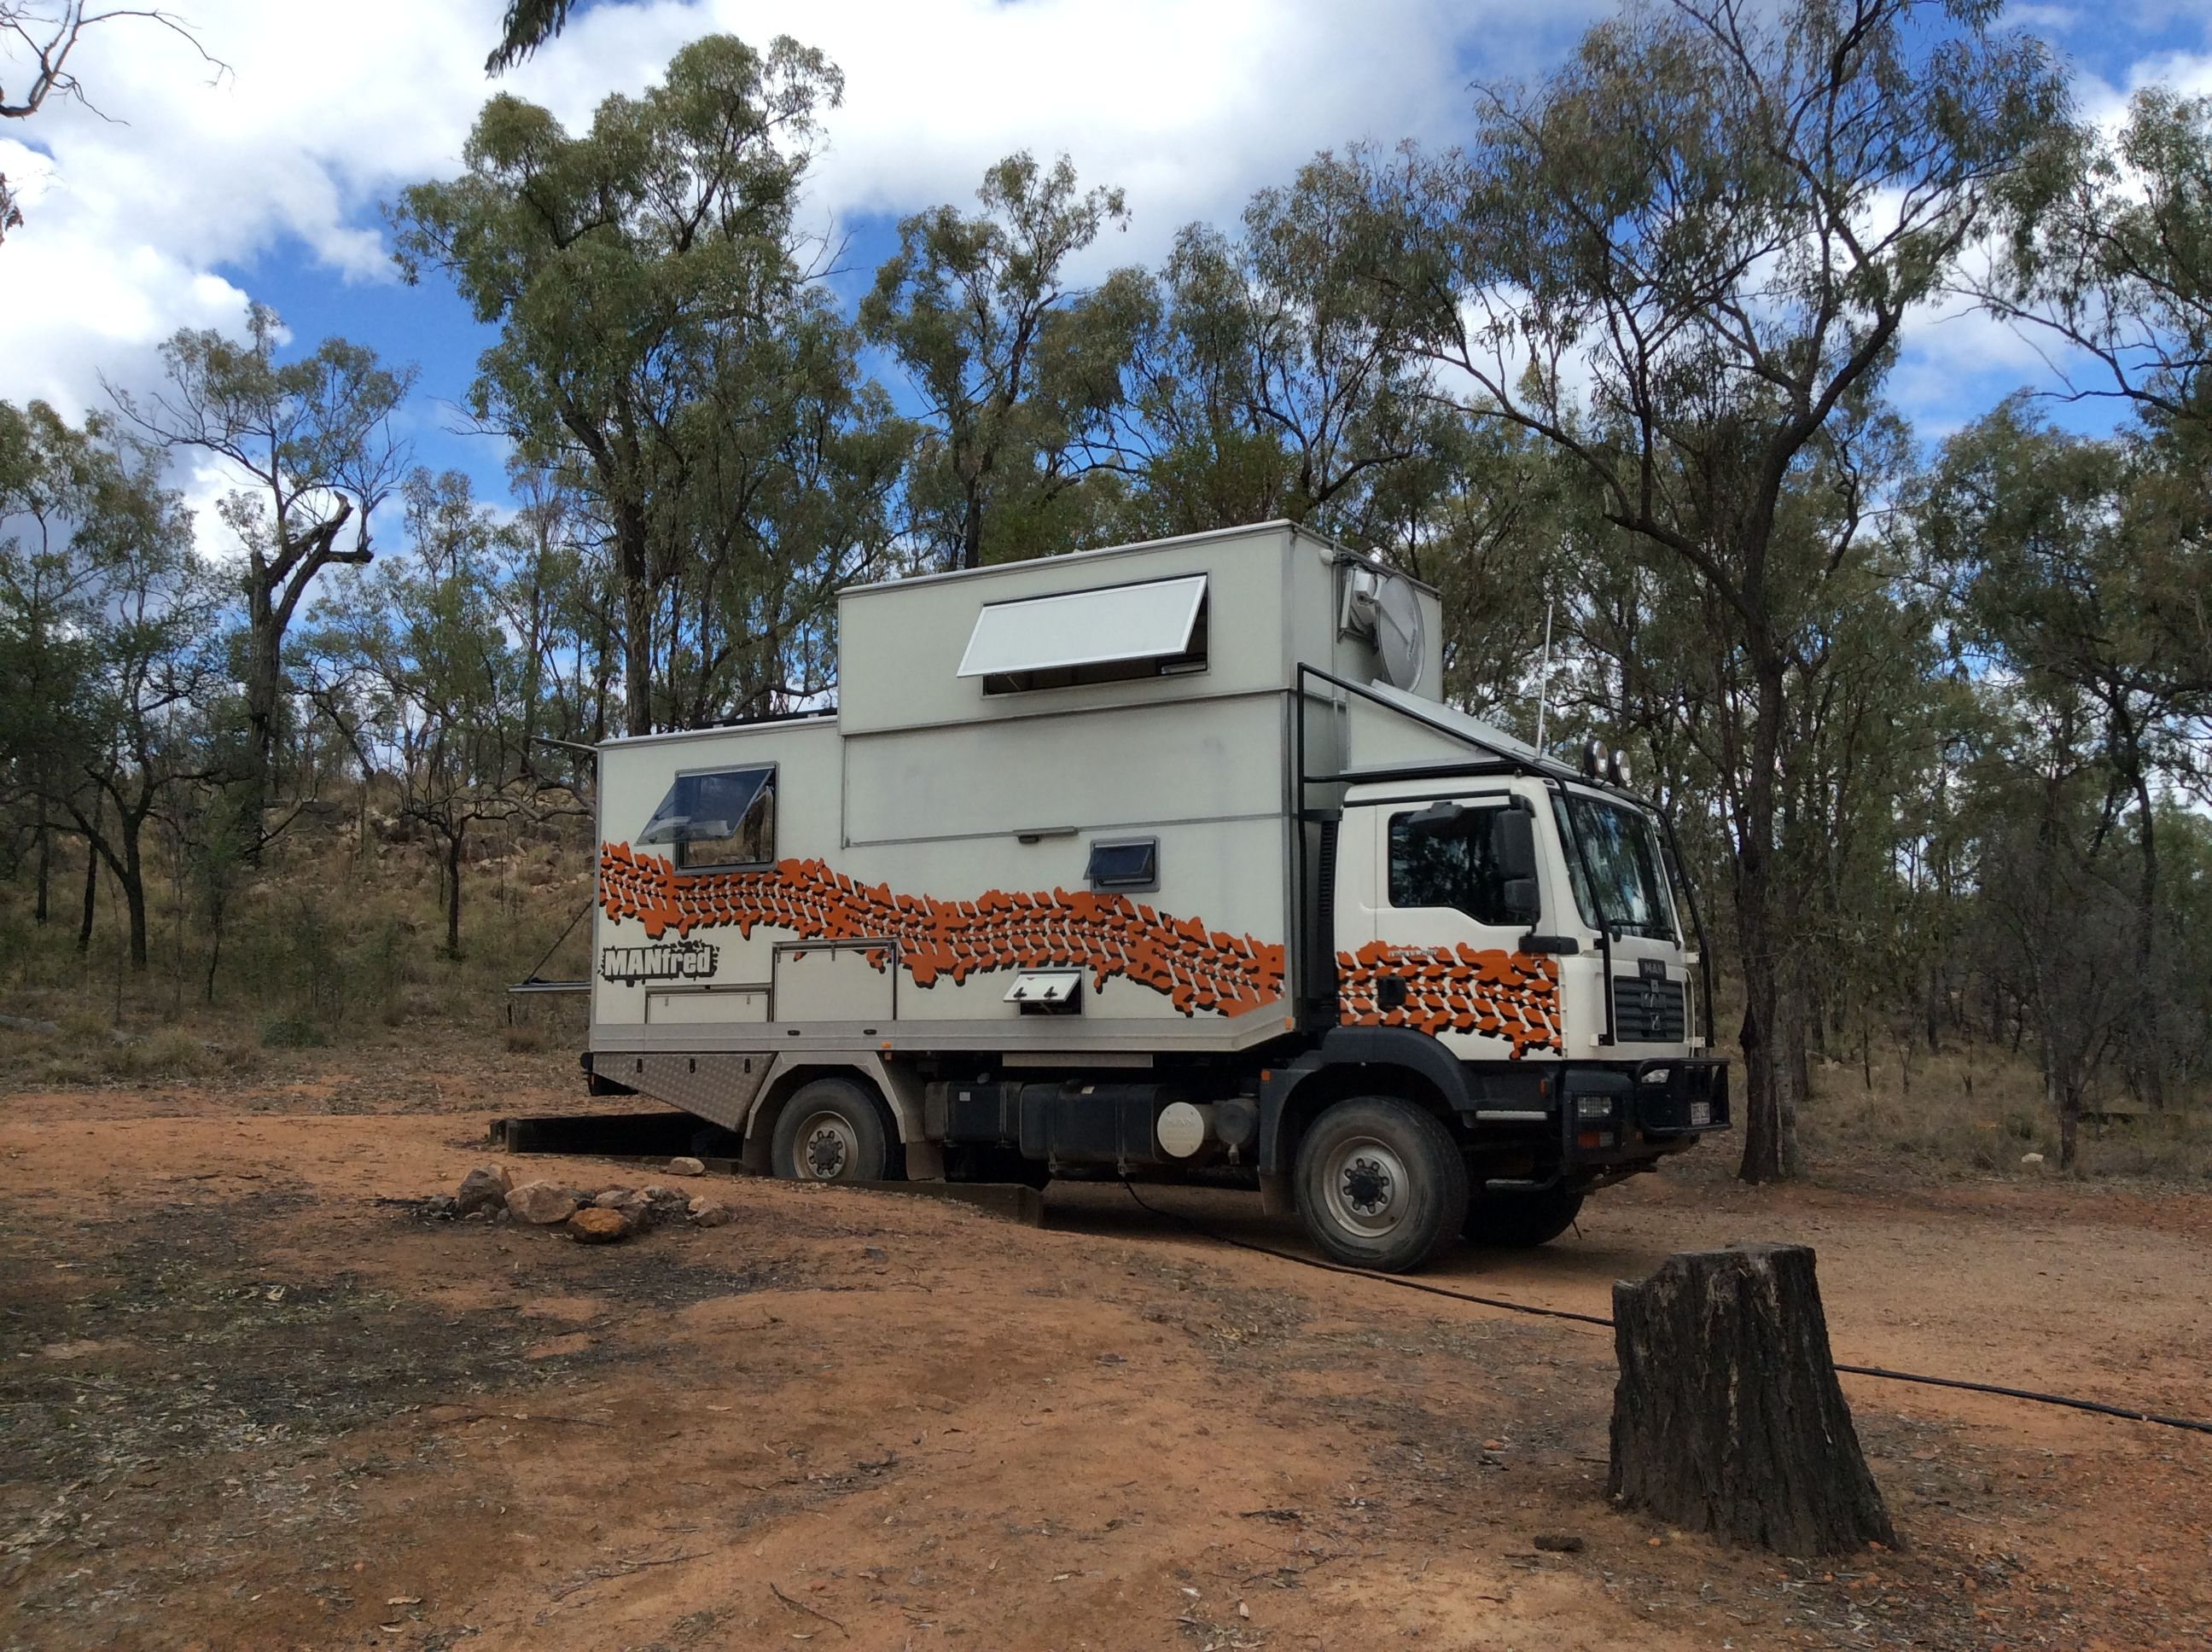 Pin by Peter Cox on Expedition vehicles | Pinterest | Expedition vehicle